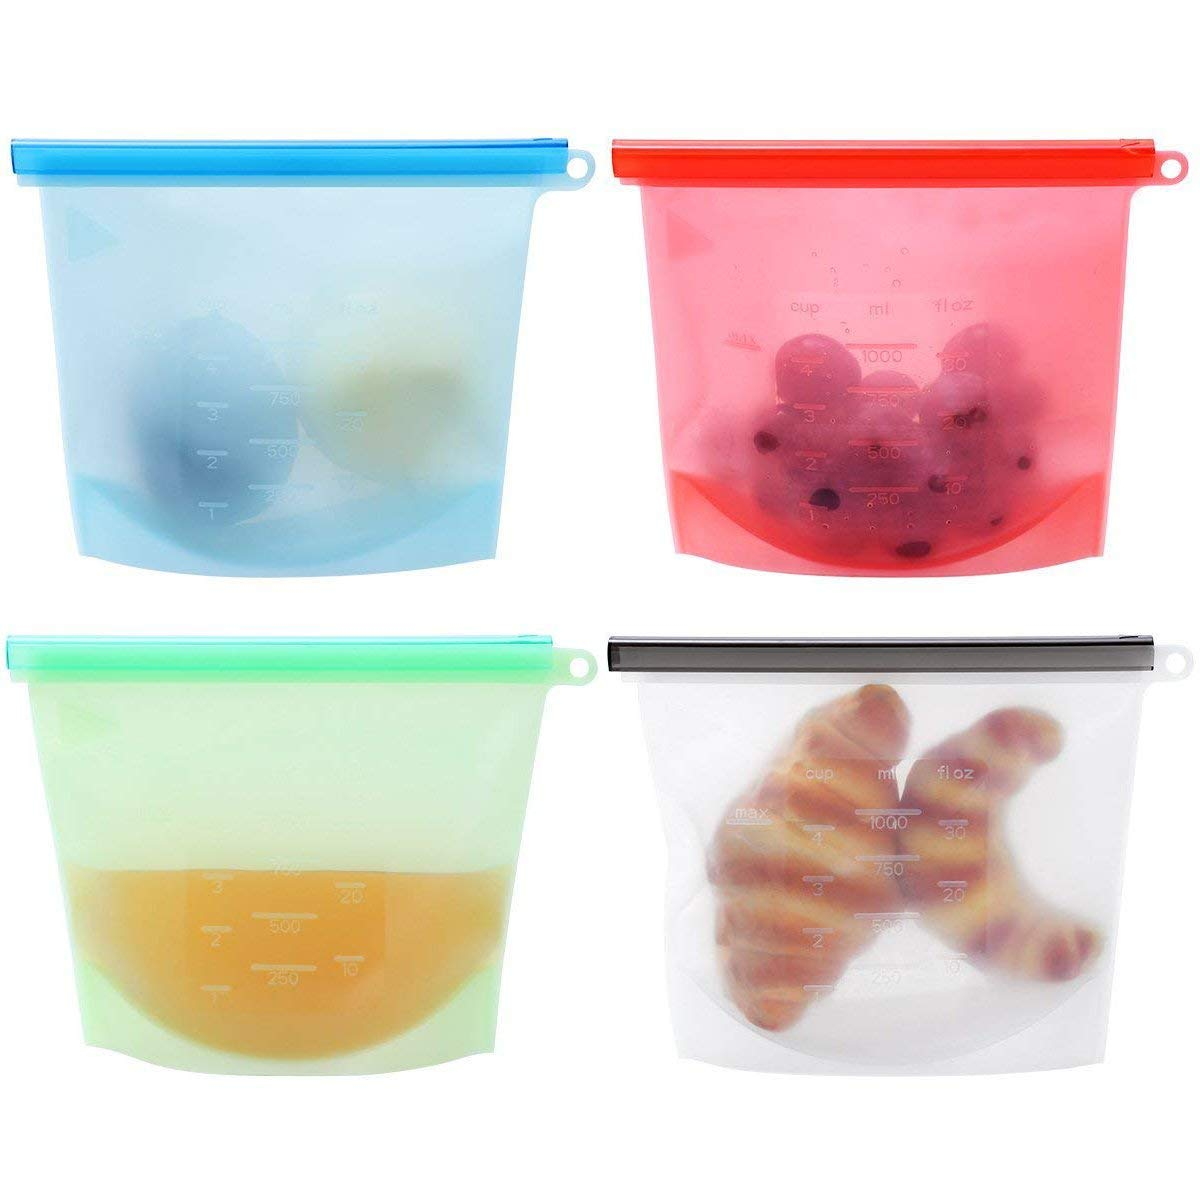 Silicone Food Storage Bags, 4-Pack Reusable Snack Bags | Sandwich, Sous Vide, Liquid, Lunch, Fruit, Freezer Airtight Seal for Simply Cooking and Storage by FourPlusOne